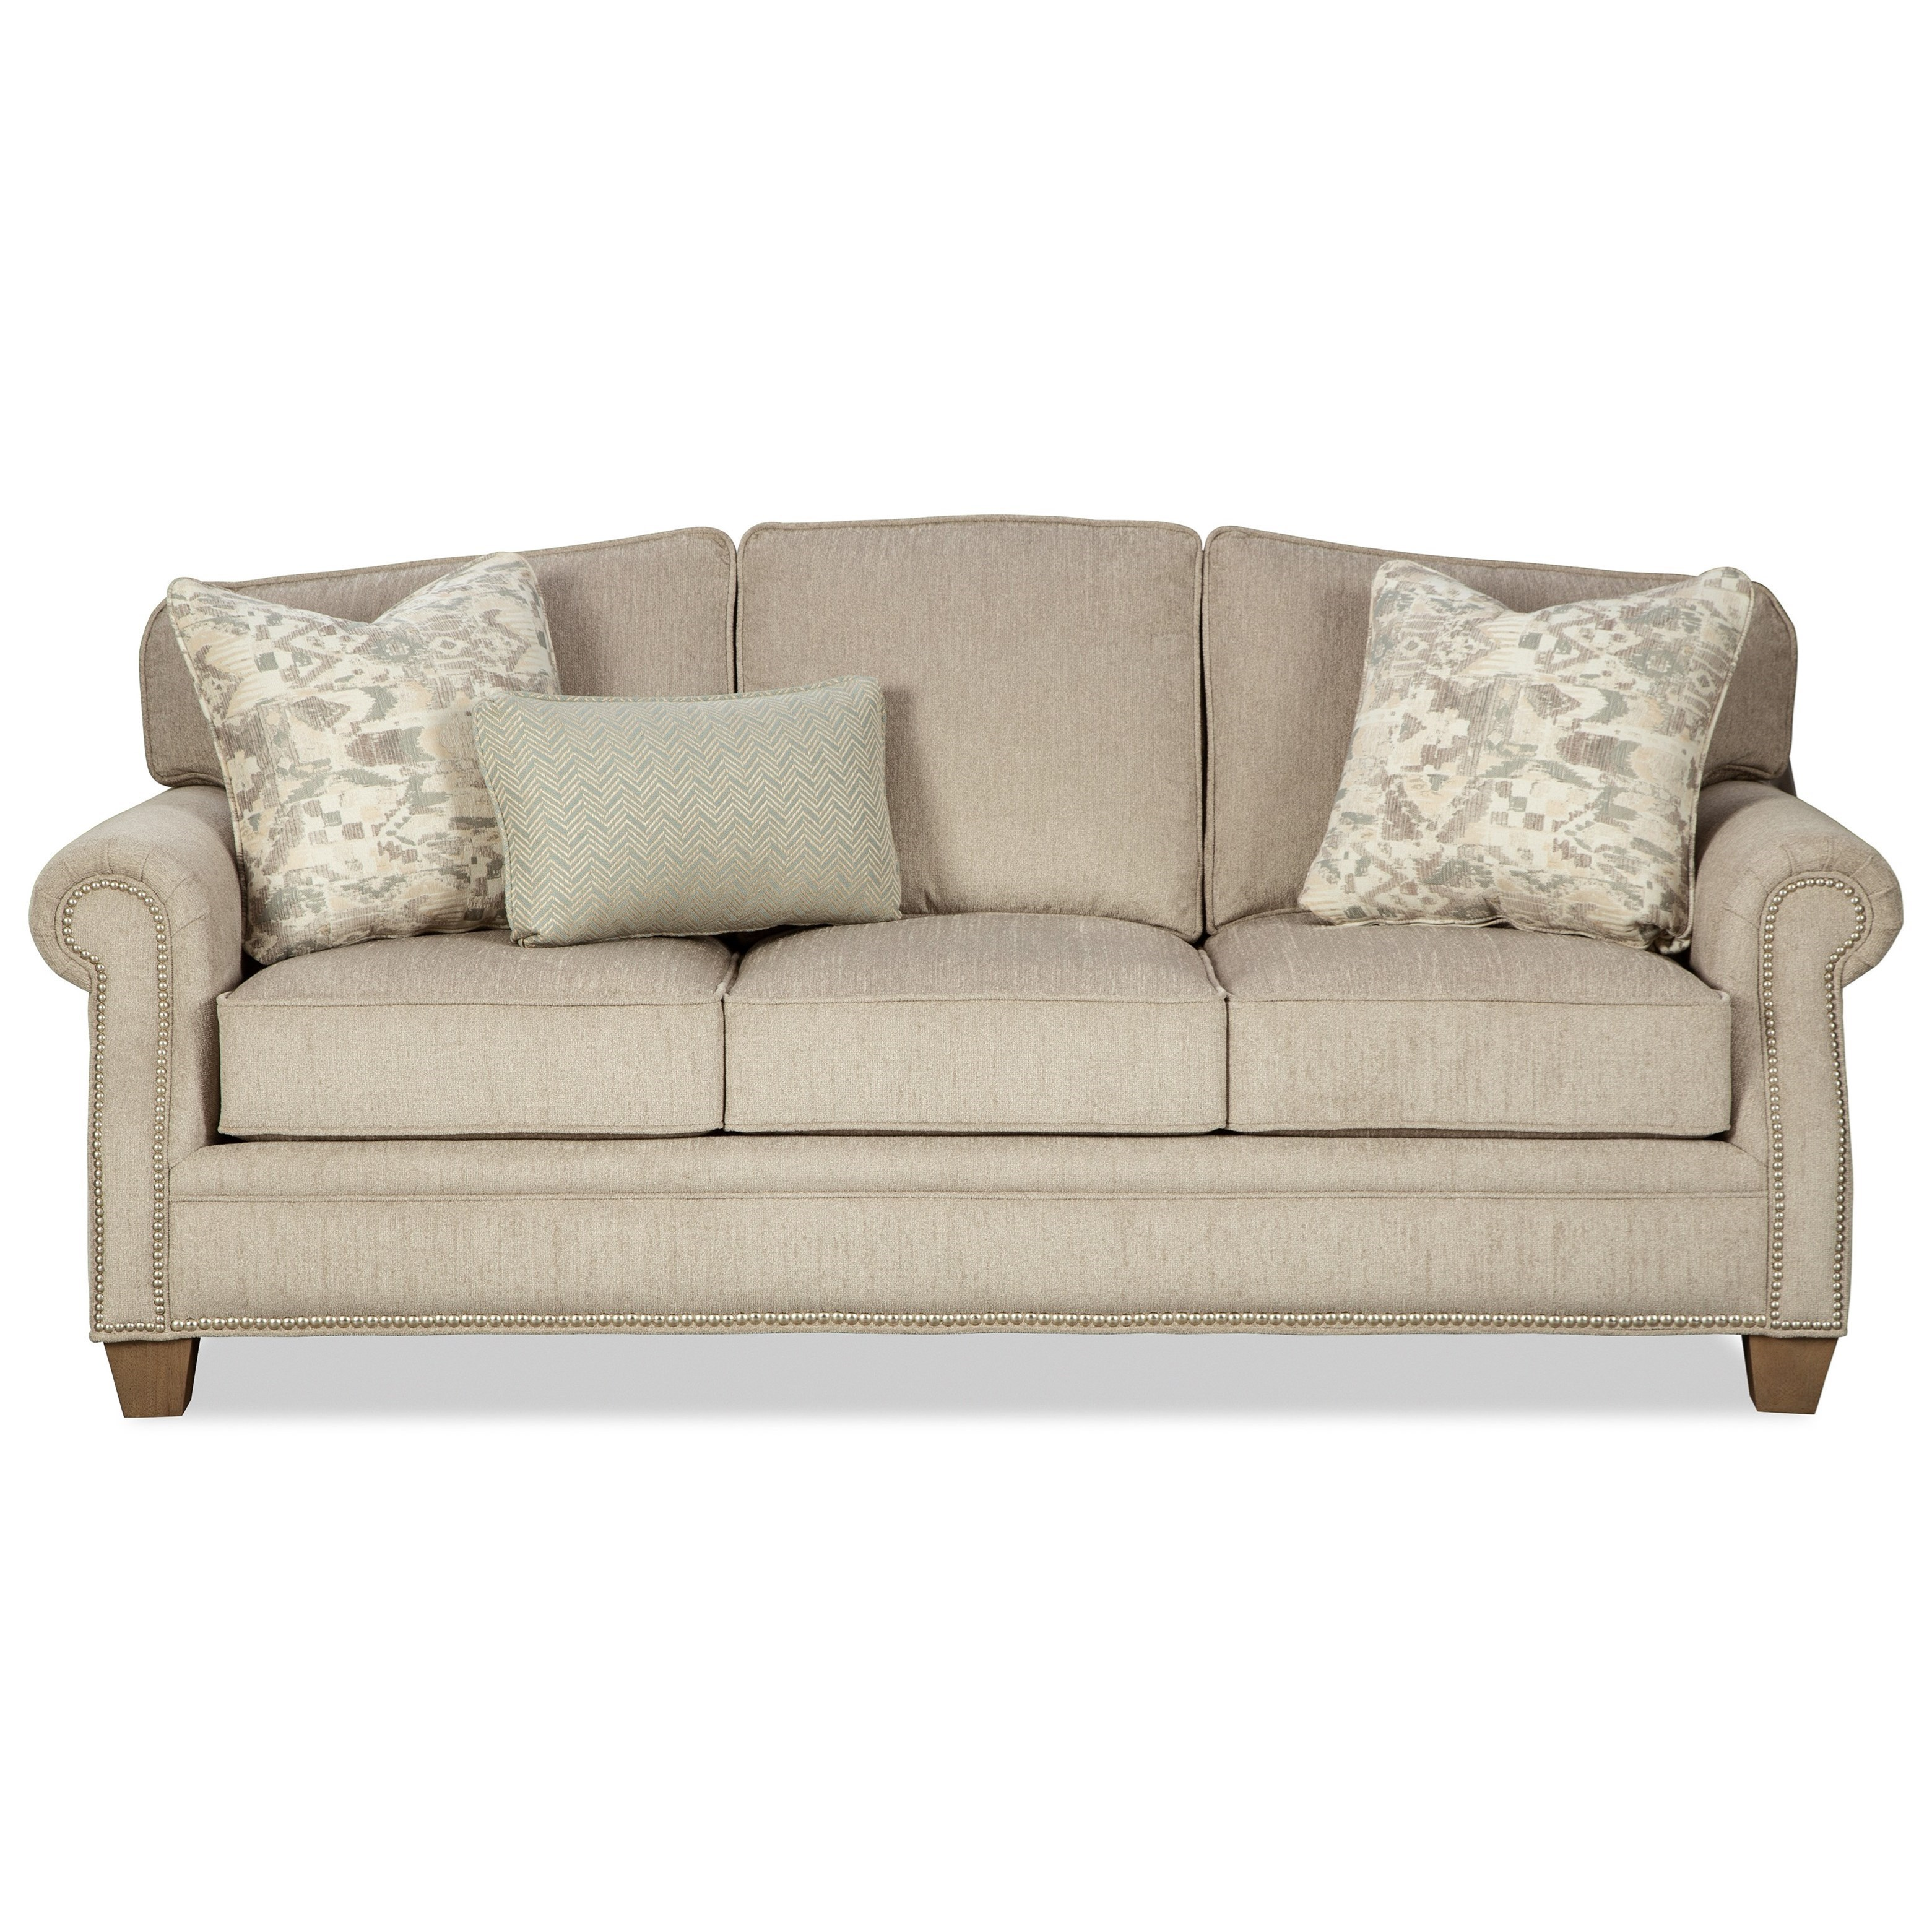 Incredible Craftmaster 787850 787850 68 Transitional Sofa With Ibusinesslaw Wood Chair Design Ideas Ibusinesslaworg